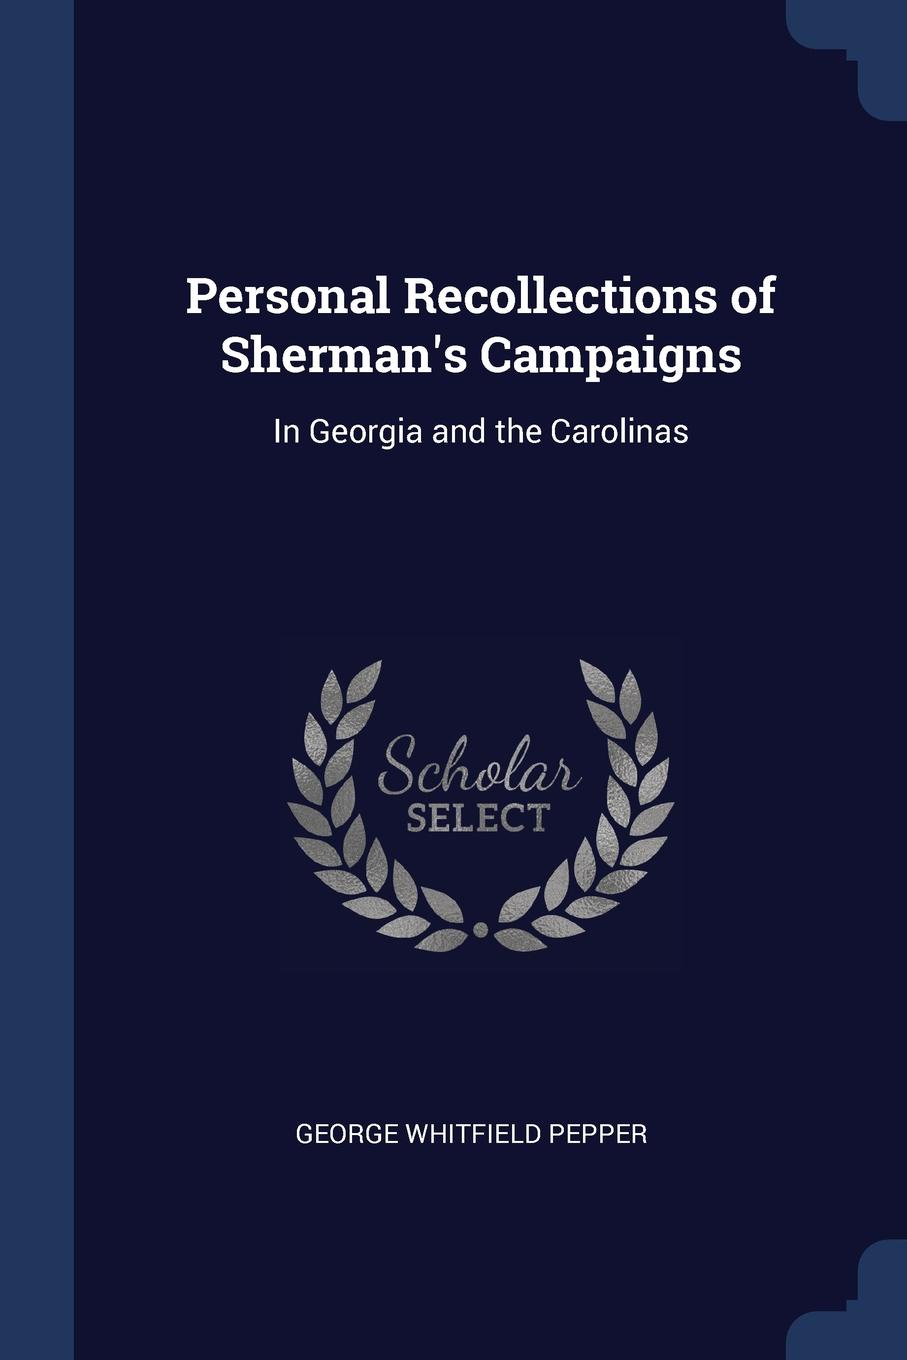 Personal Recollections of Sherman.s Campaigns. In Georgia and the Carolinas. George Whitfield Pepper